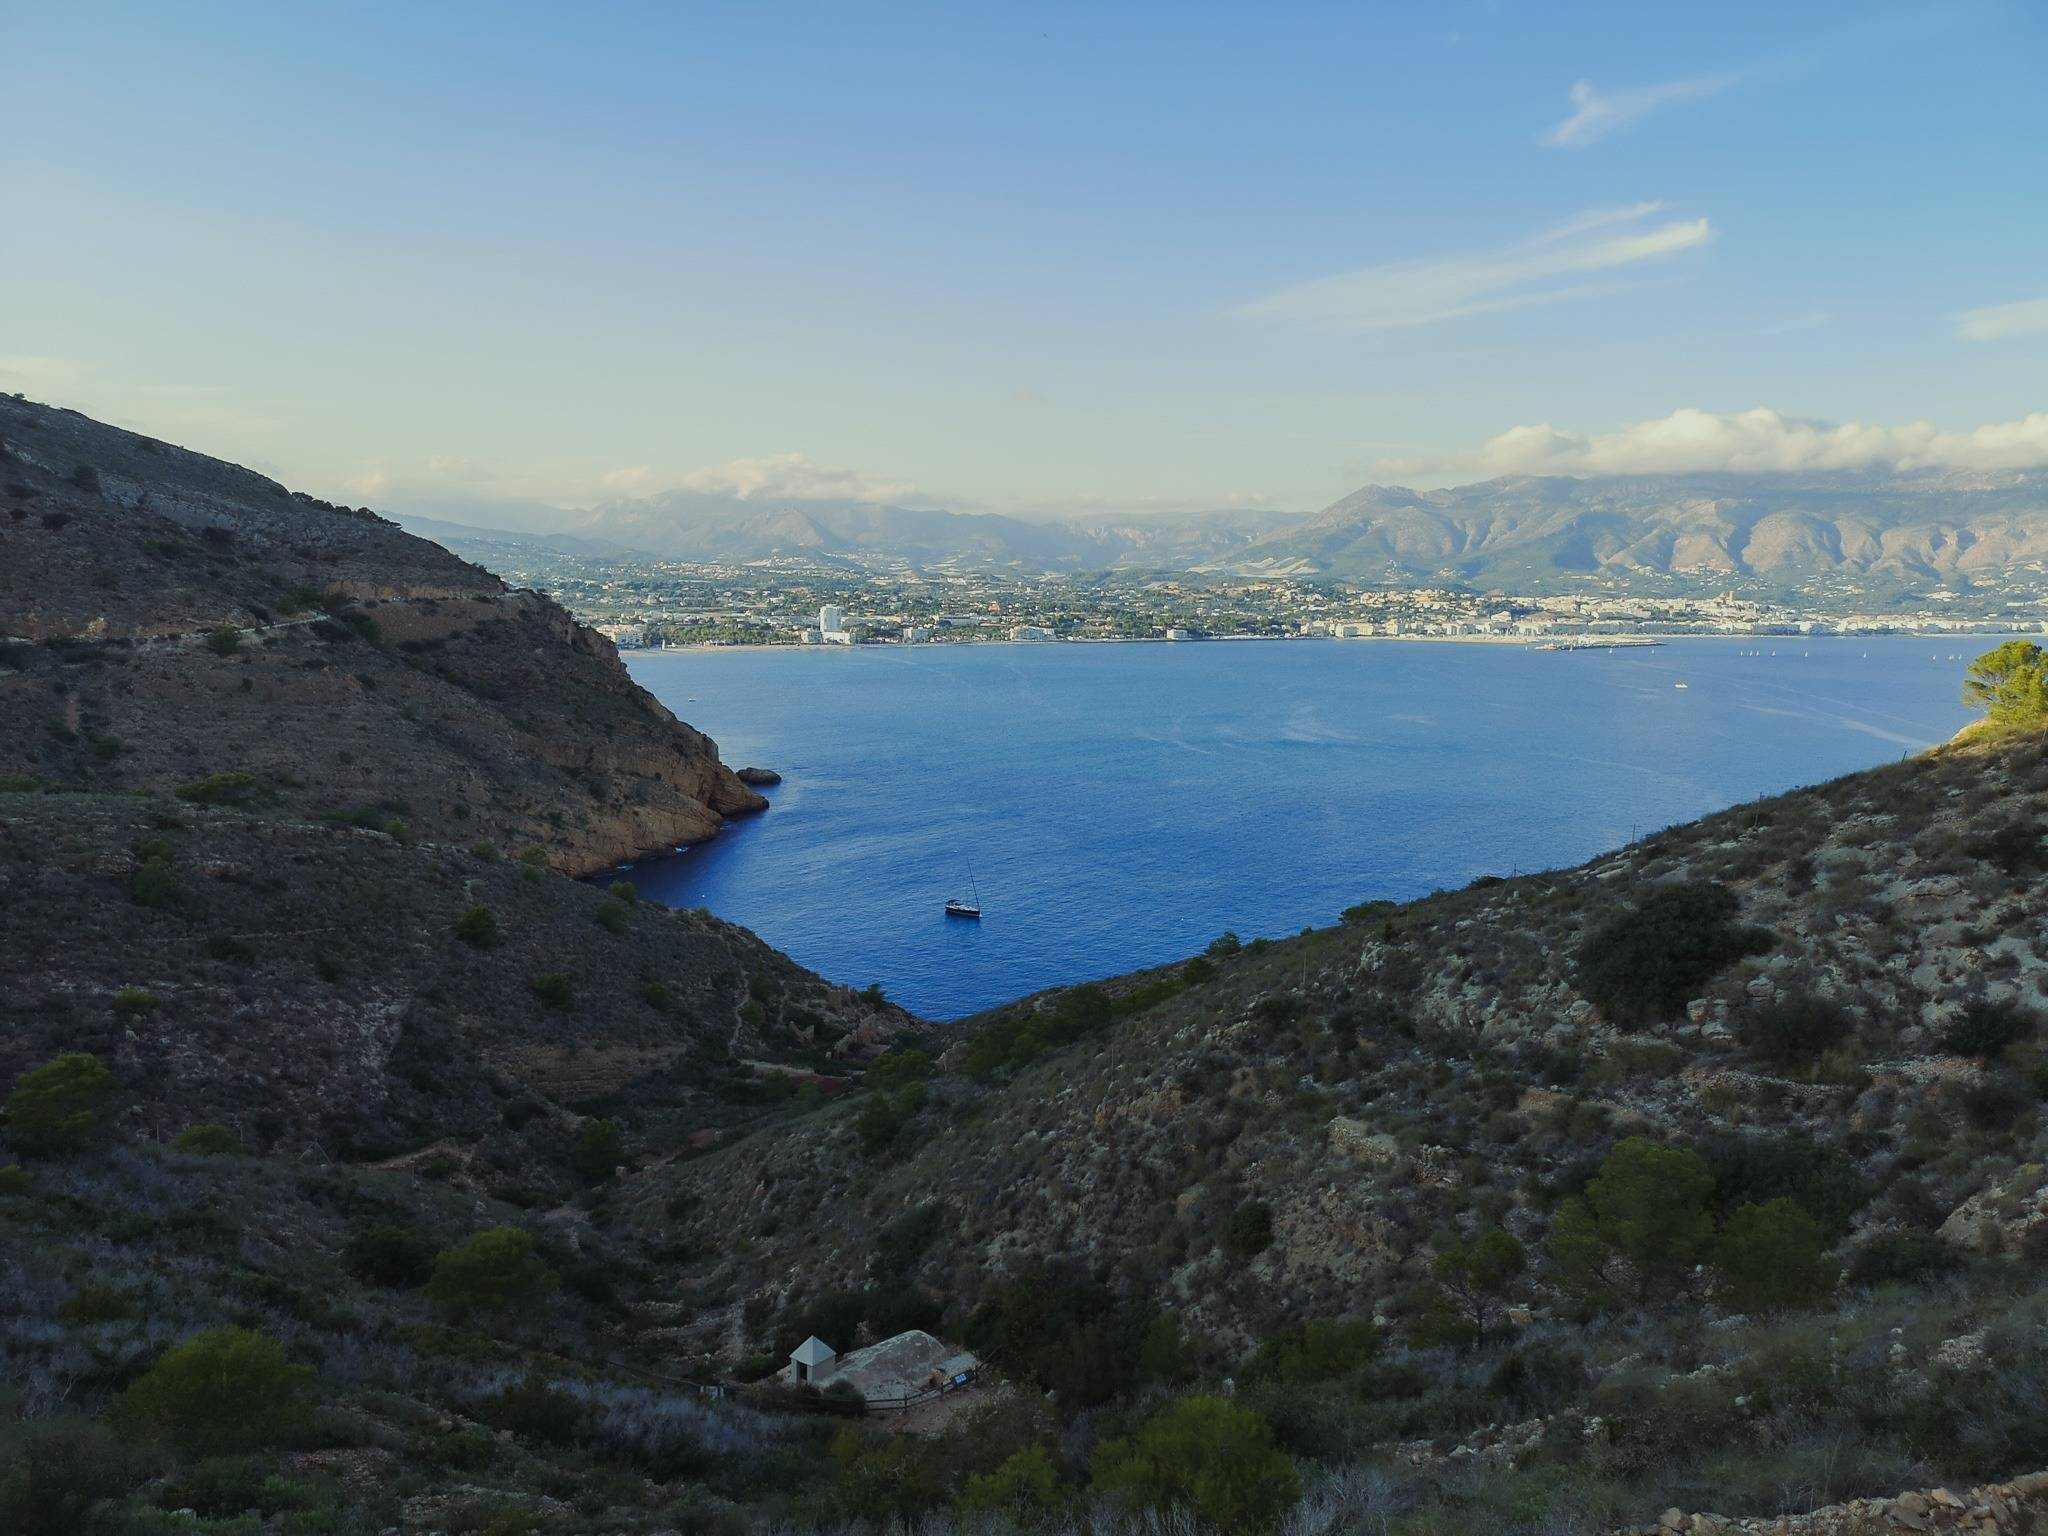 The coves of Serra Gelada and Benidorm Island were regular hideouts for pirates between the 16th and 18th centuries. Photo by Alis Monte [CC BY-SA 4.0], via Connecting the Dots